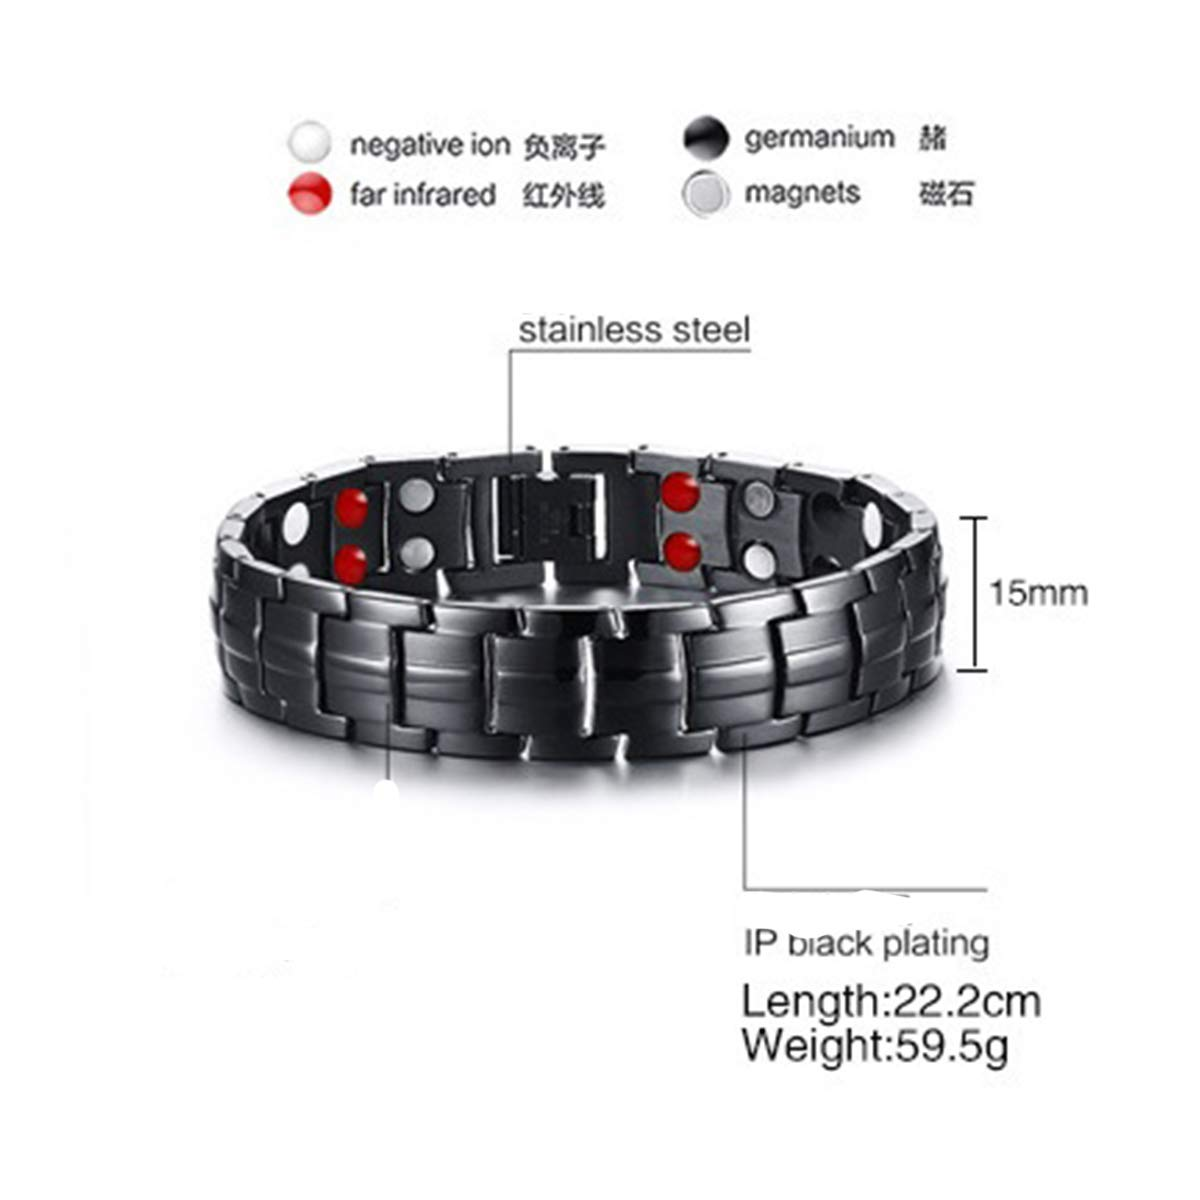 Vinca Mascot Mens Magnetic Therapy Bracelets Double Stong Health Magnets for Arthritis Pain Relief Father's Day, Black